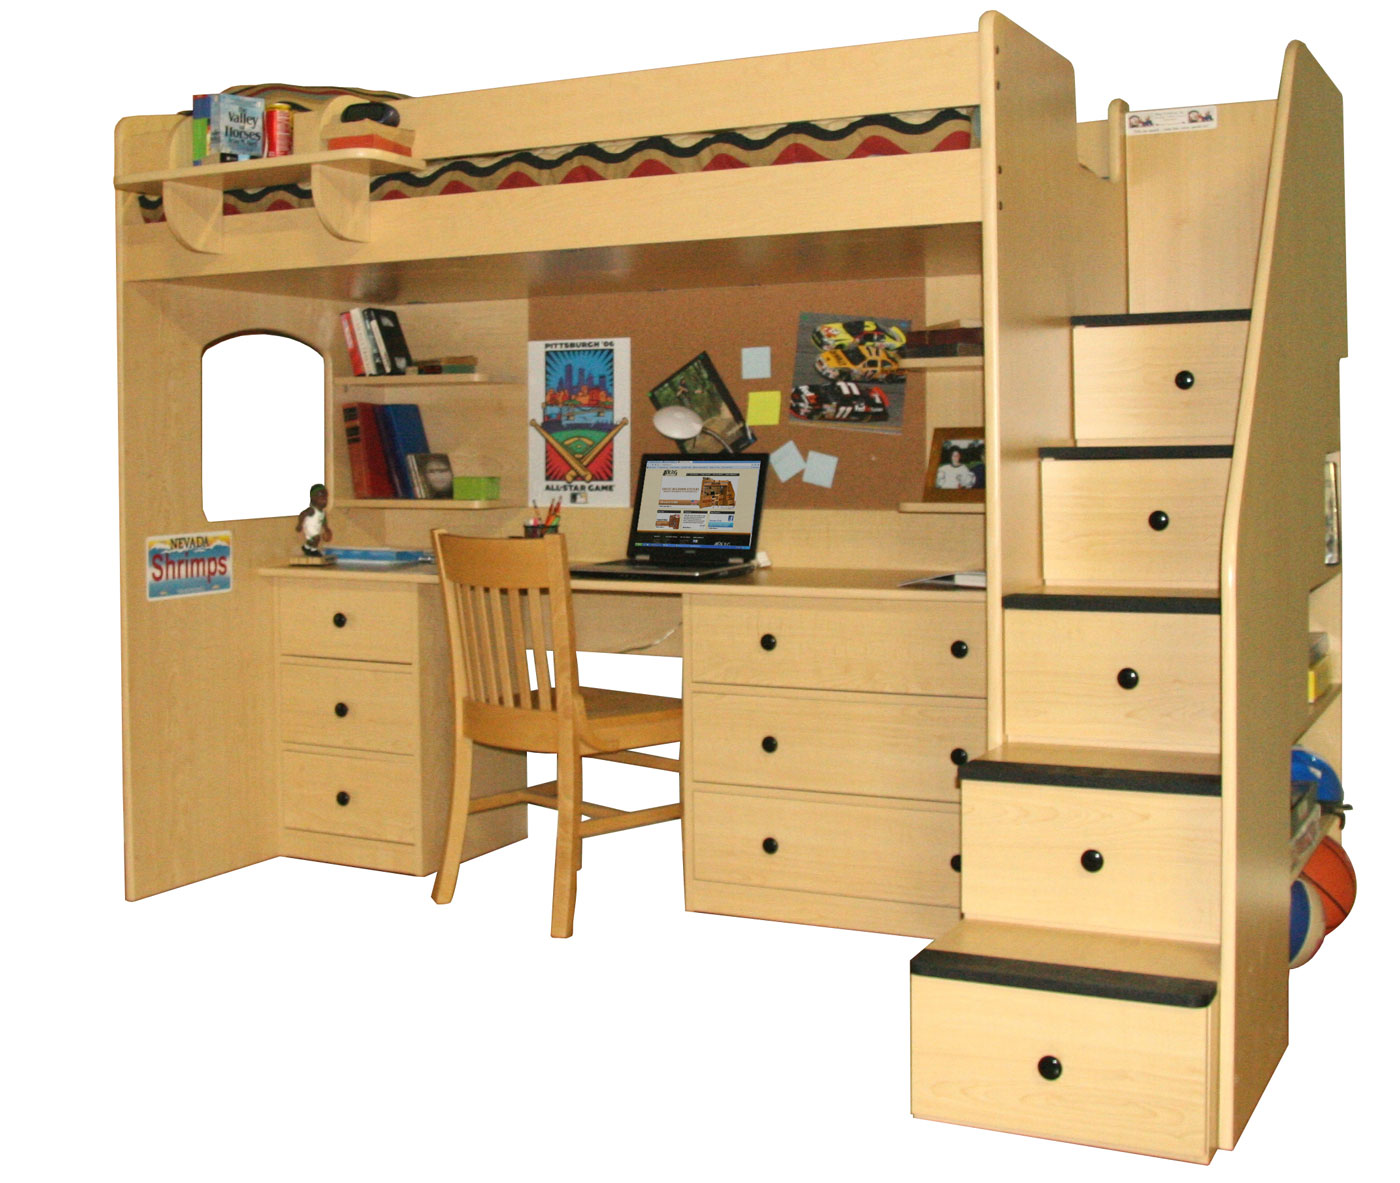 Permalink to free designs for loft bed